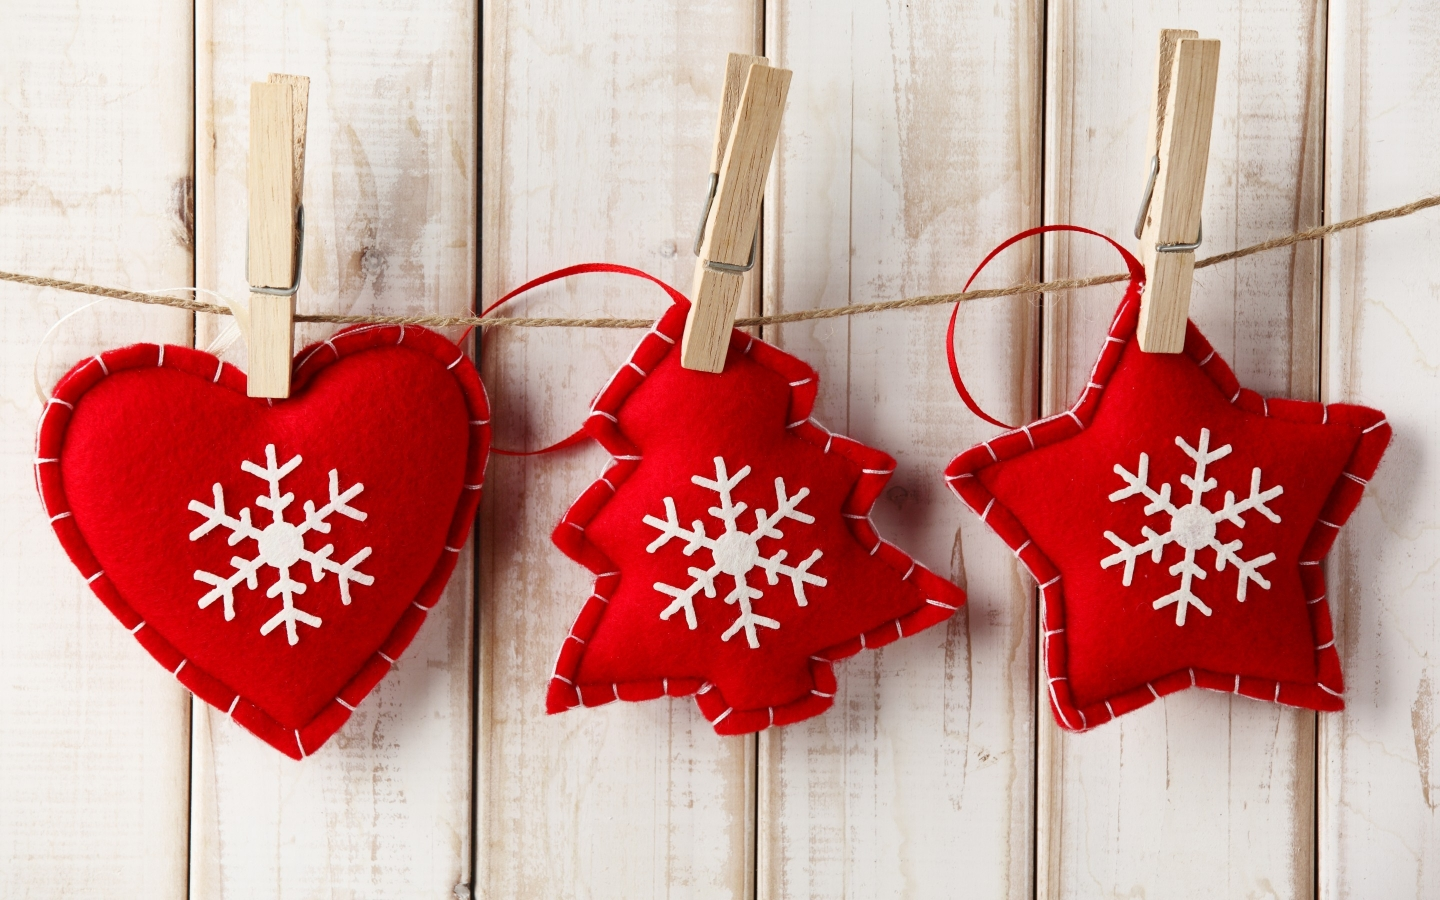 Handmade Red Christmas Ornaments for 1440 x 900 widescreen resolution